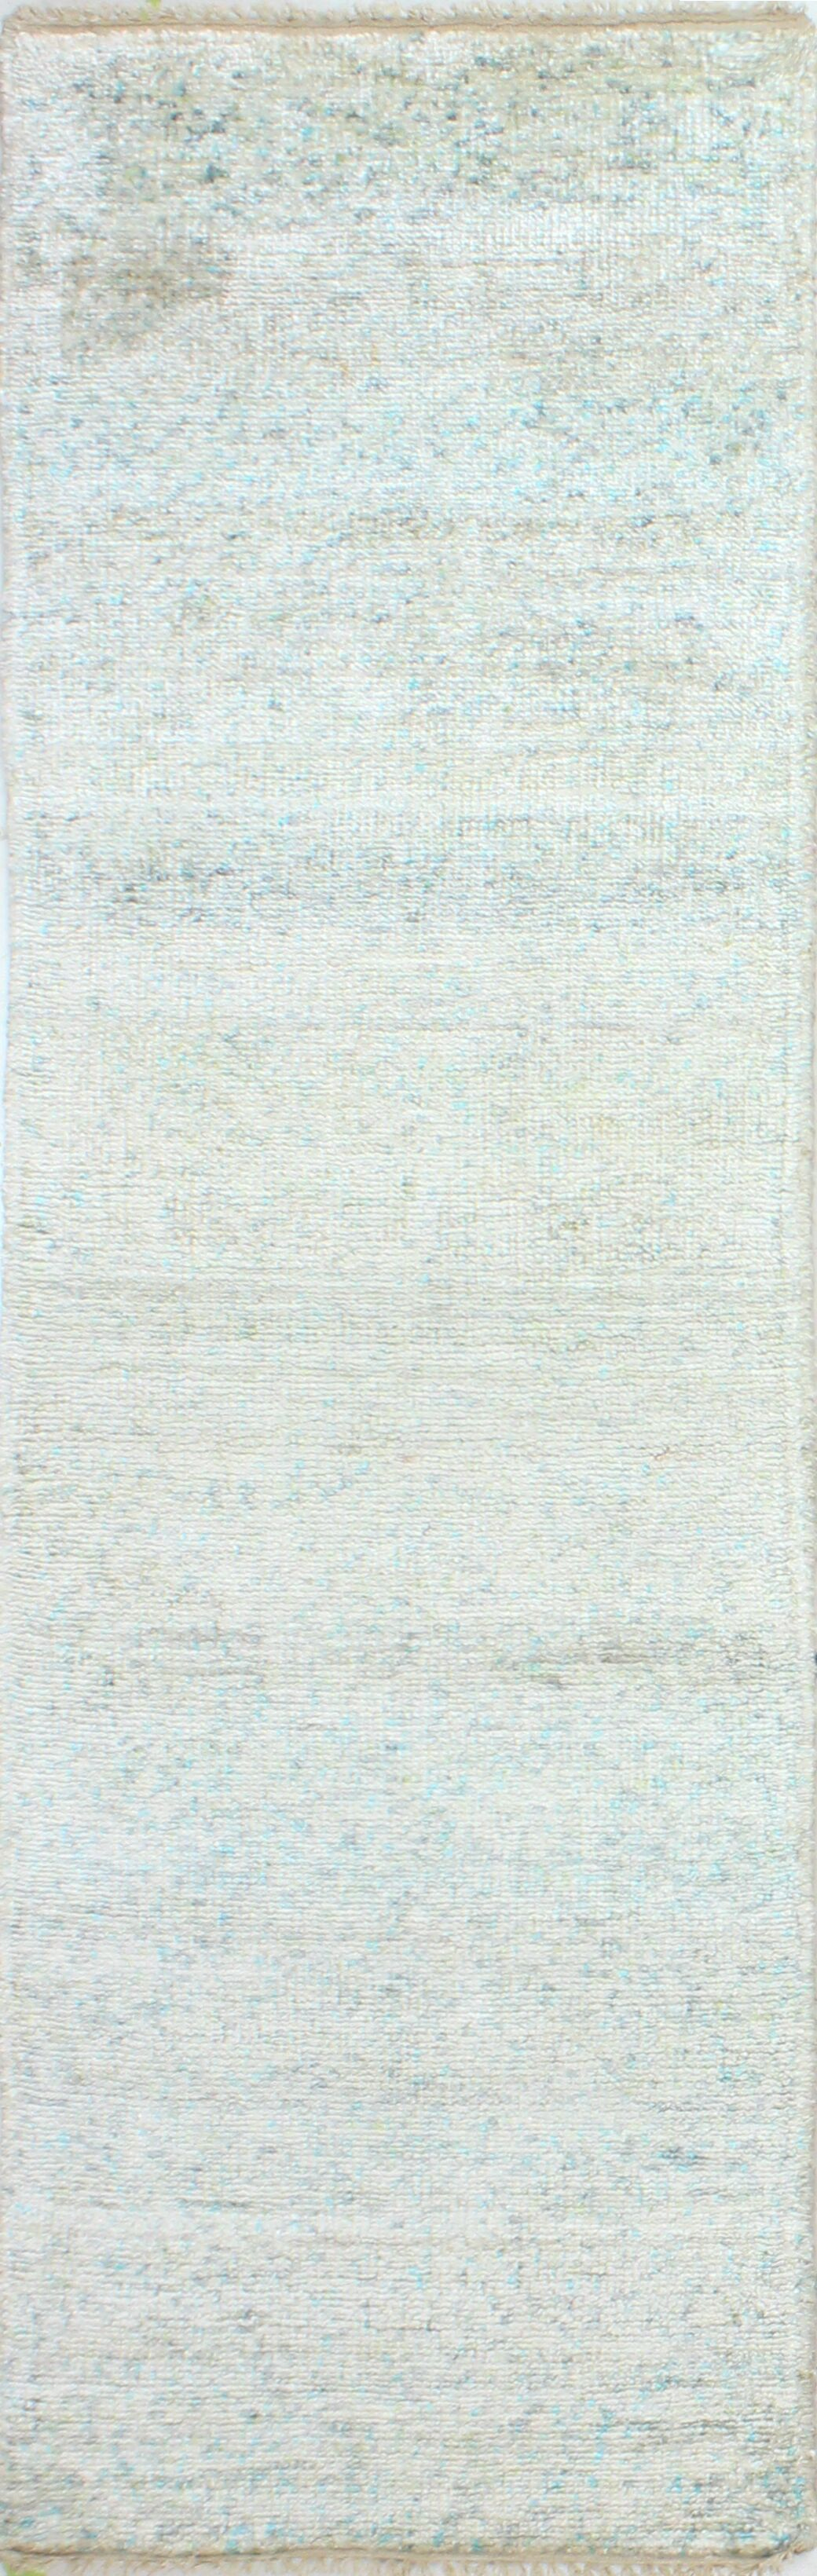 Plunkett Hand Knotted Cotton Cream Area Rug Size: Runner 2'6